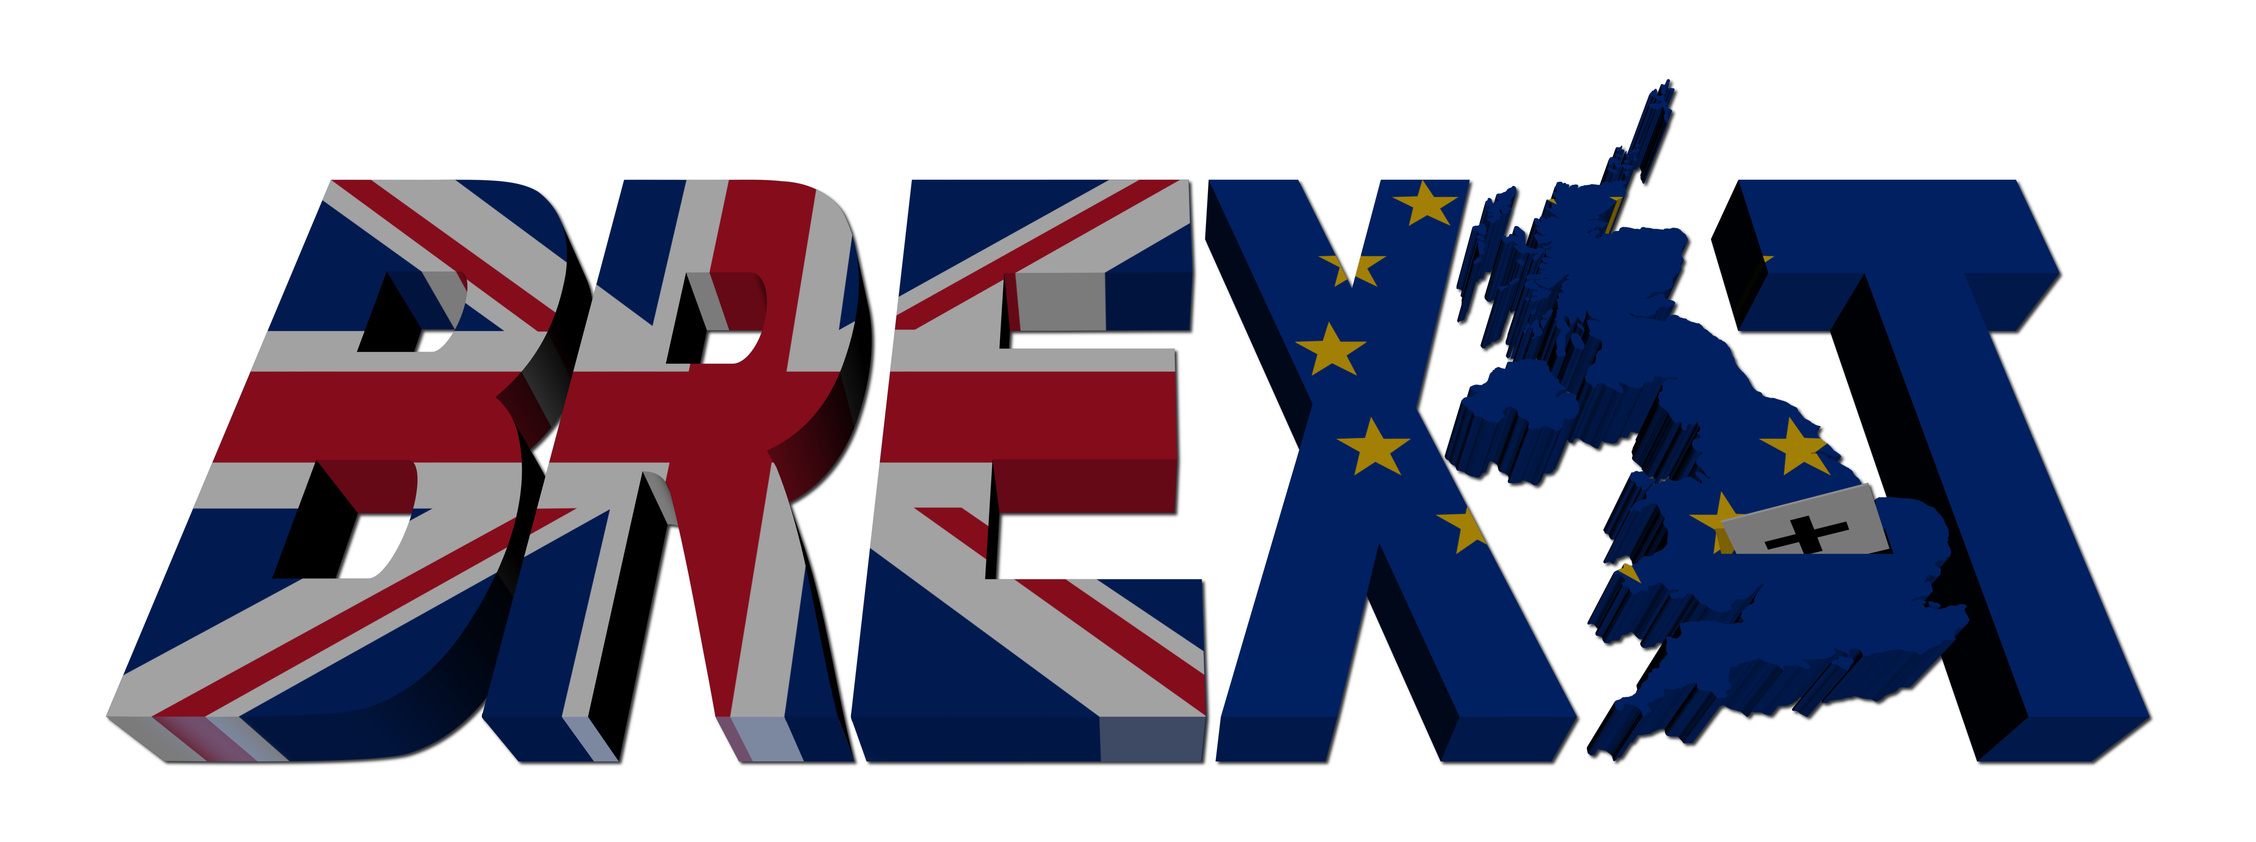 Brexit text with British and Eu flags illustration